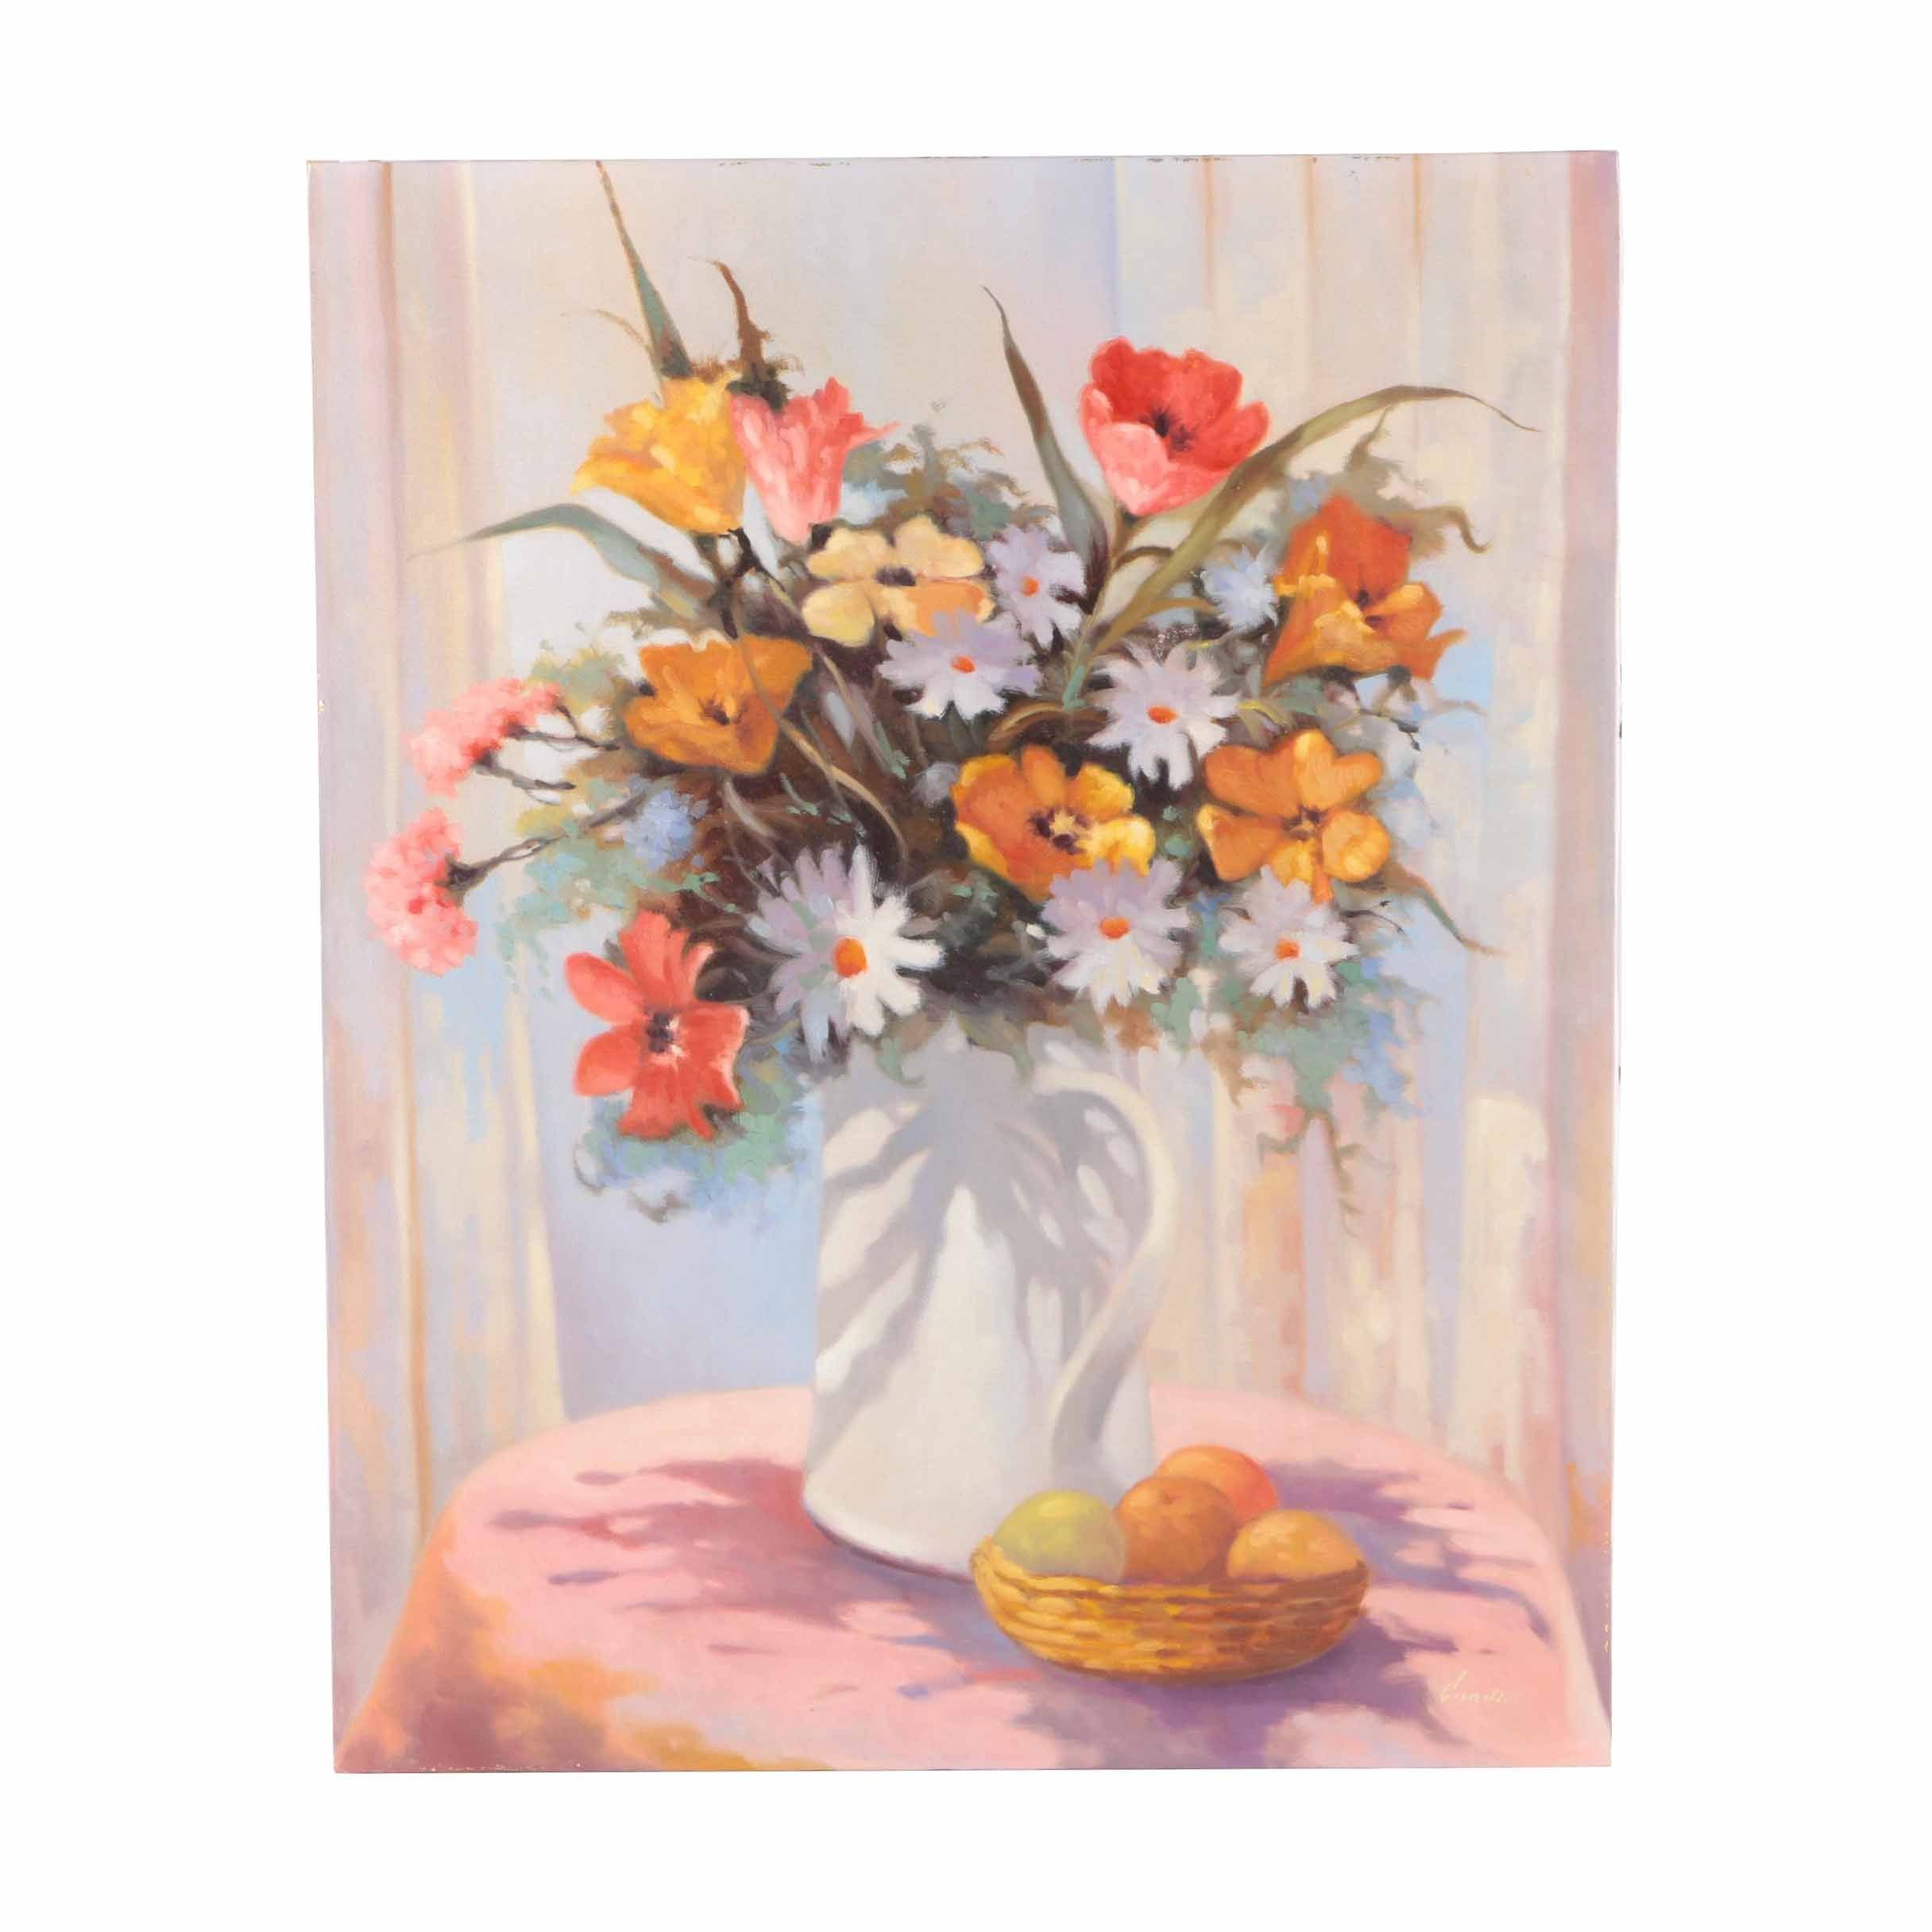 Lugano Candi Oil Painting on Canvas Floral Still Life with Fruit